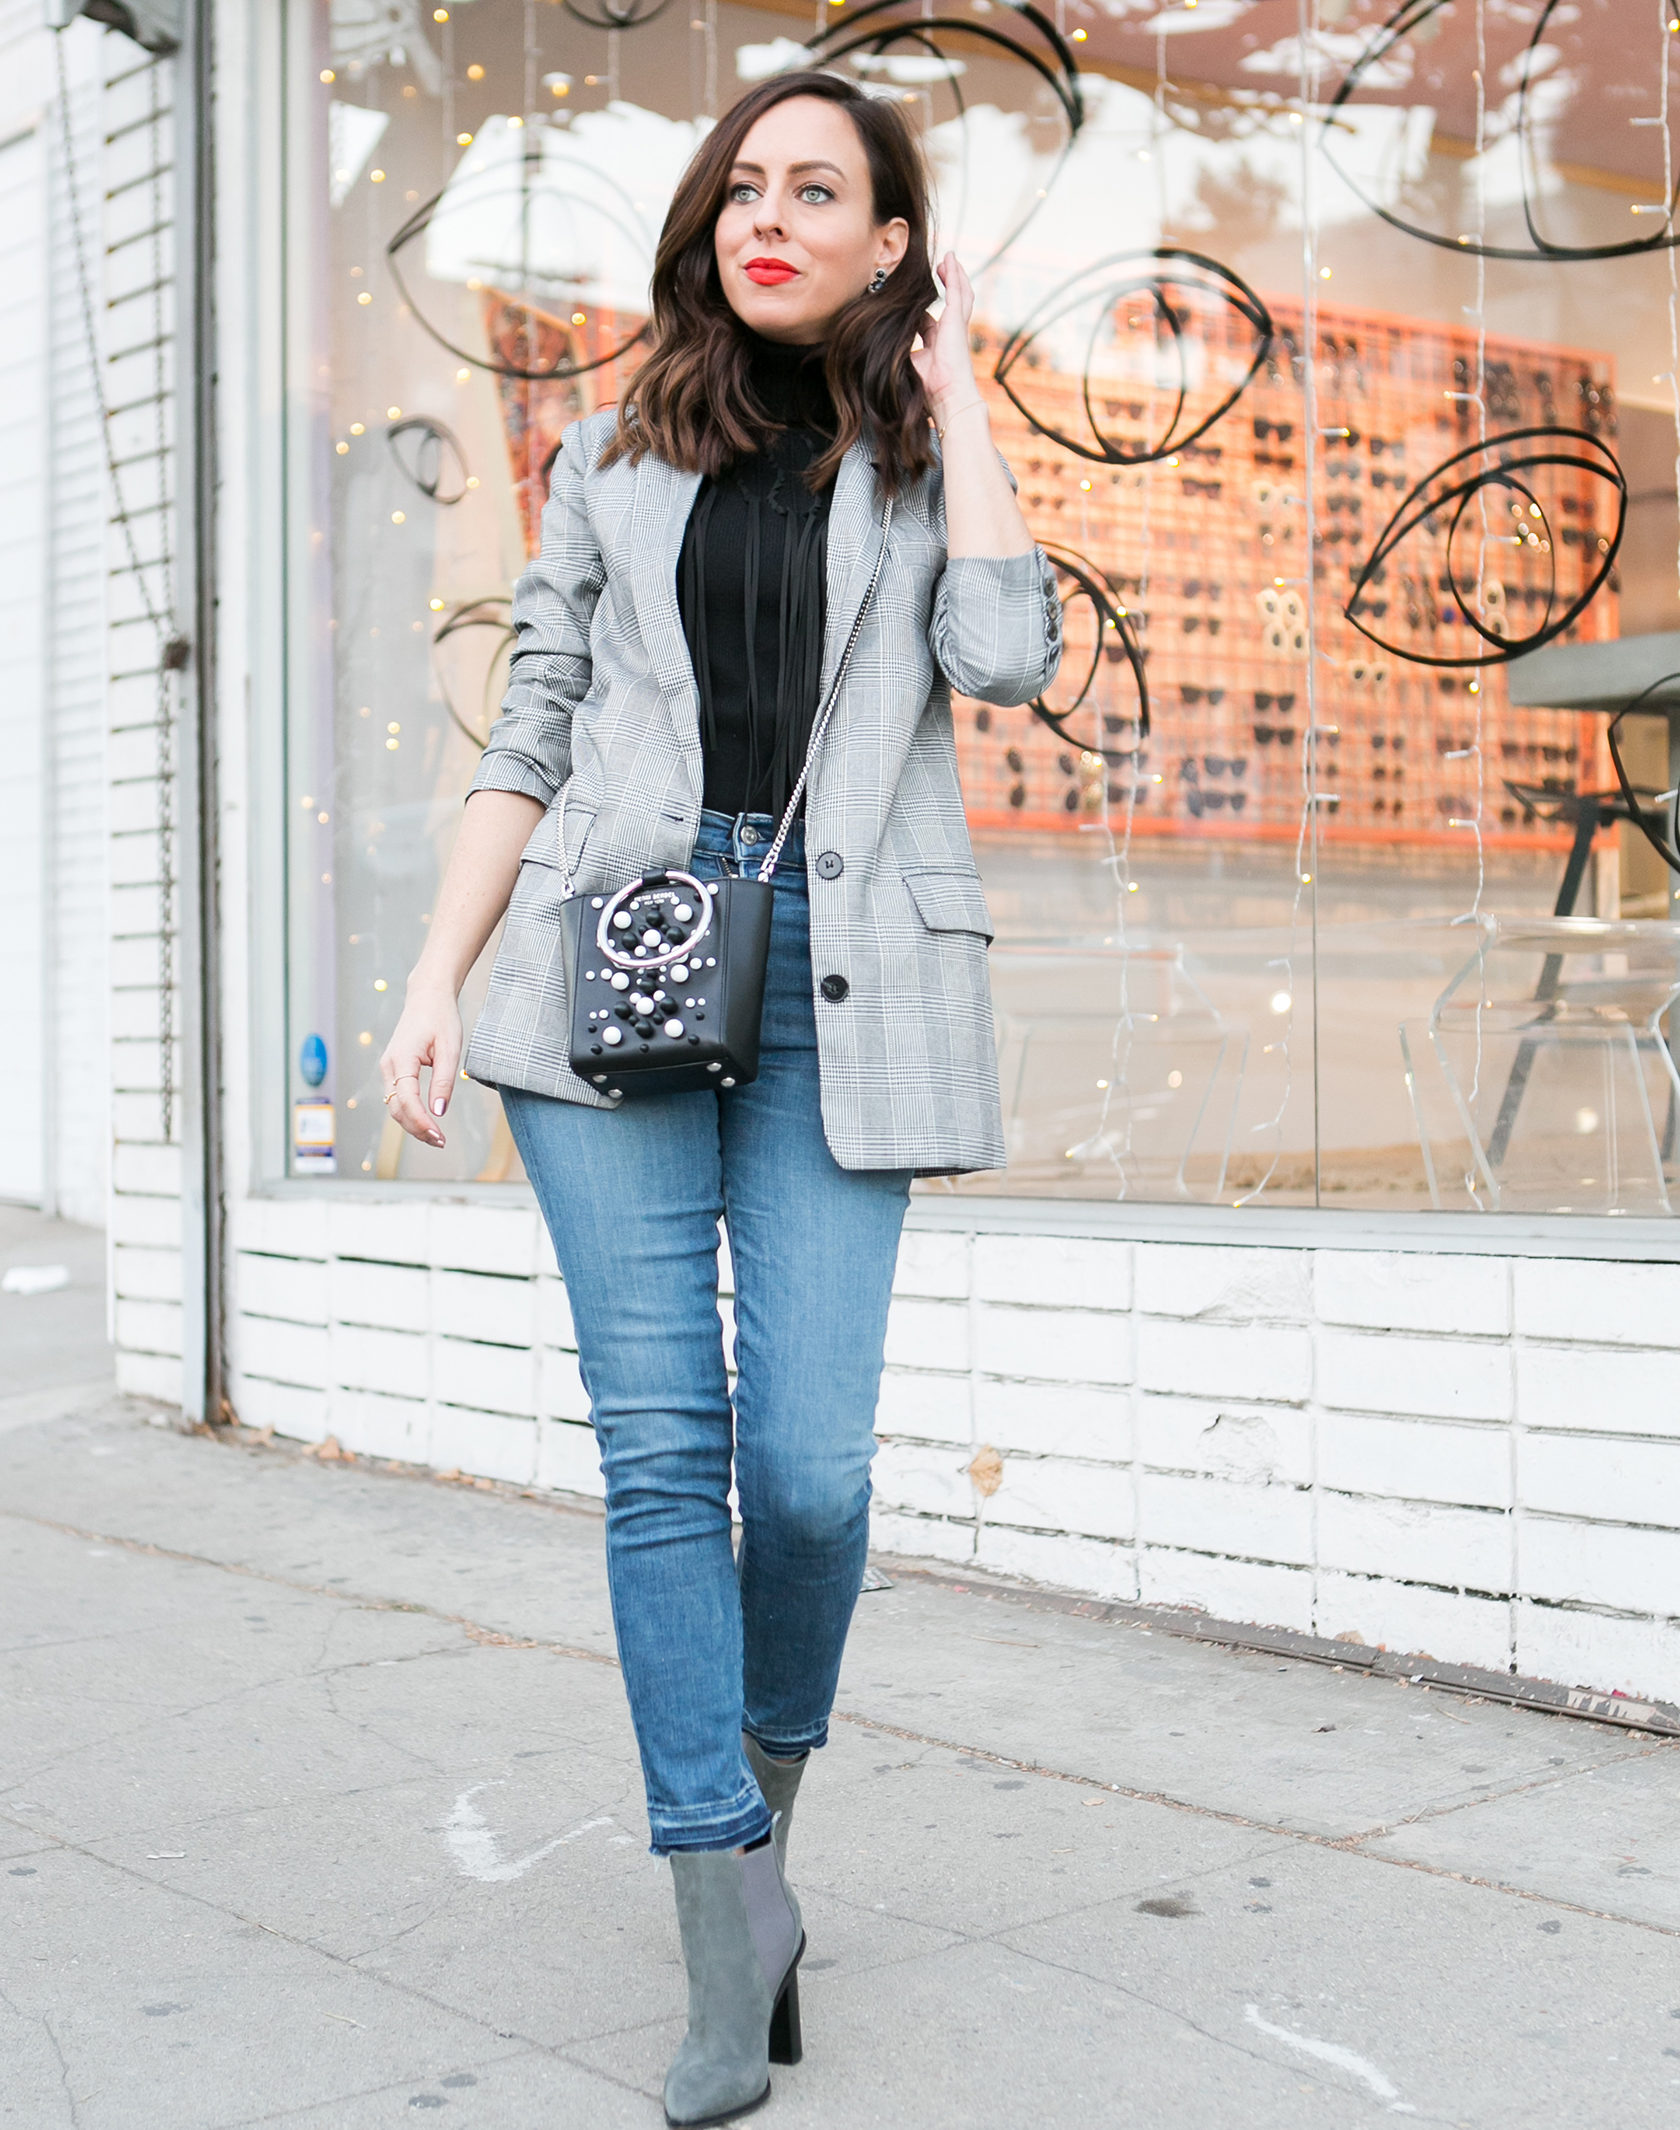 Sydne Style shows how to wear the plaid blazer trend with skinny jeans